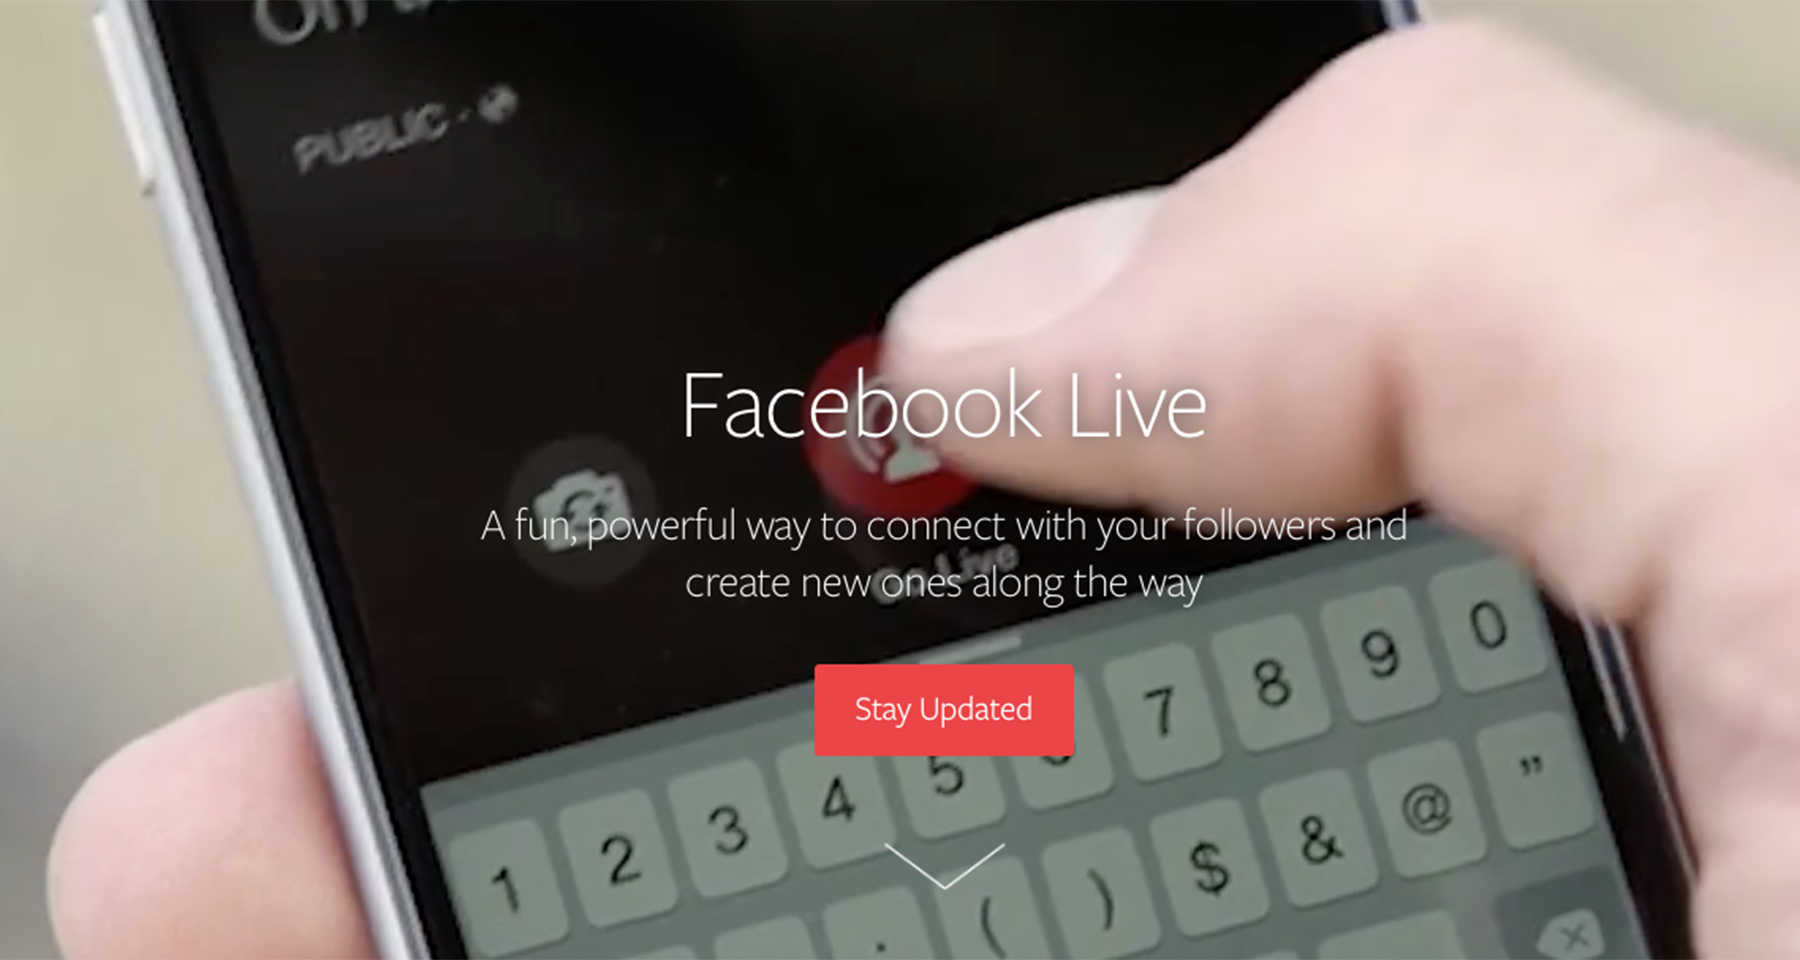 Facebook Live takes video to new level for news media companies